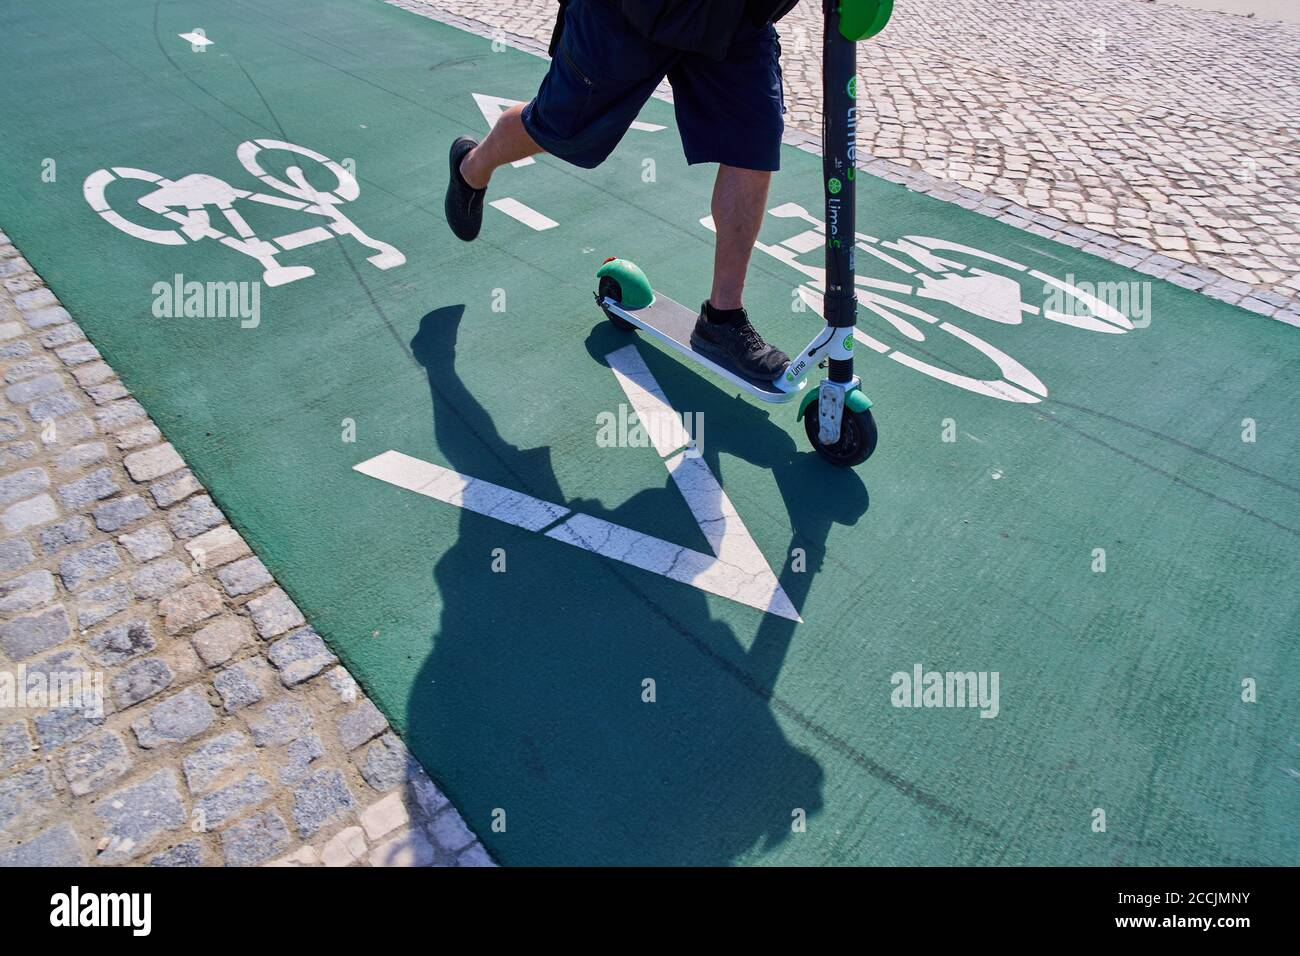 Lisbon, Lissabon, Portugal, 16rd August 2020.  A man driving an e-scooter on a bicycle track. © Peter Schatz / Alamy Stock Photos Stock Photo